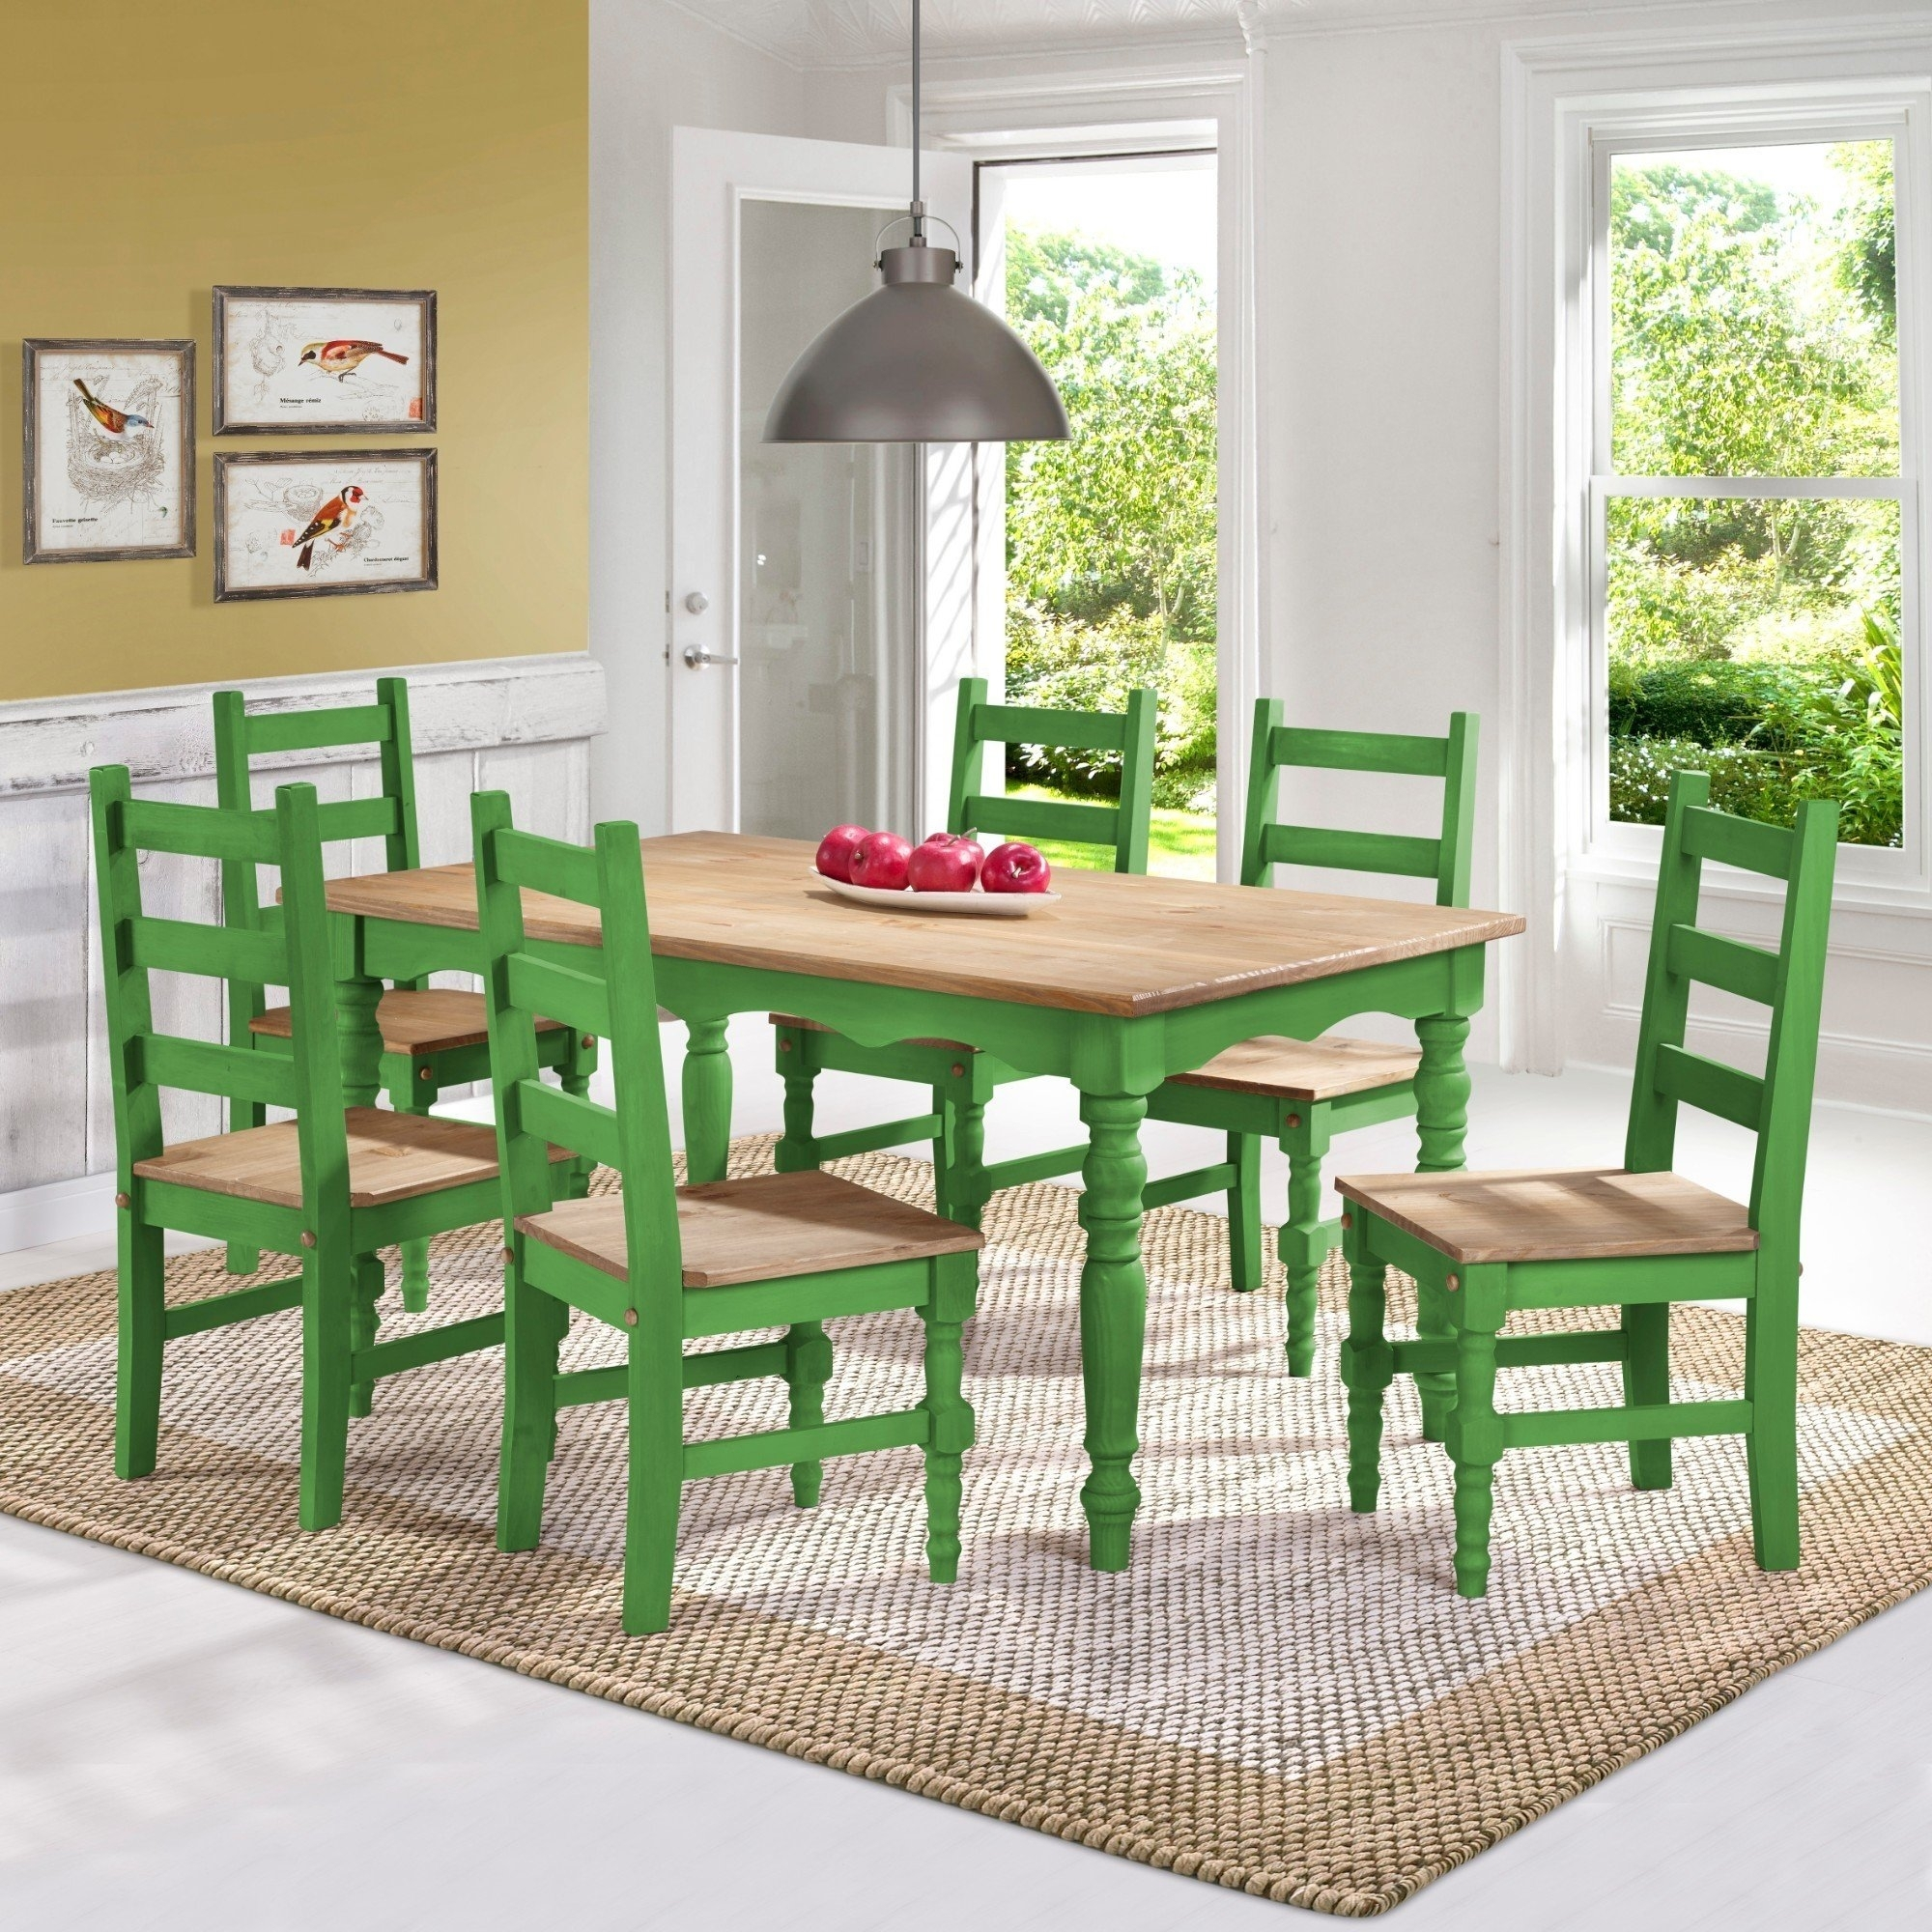 Shop Manhattan Comfort Jay 7 Piece Solid Wood Dining Set With 6 With Regard To Most Recent Helms 7 Piece Rectangle Dining Sets (Image 13 of 20)